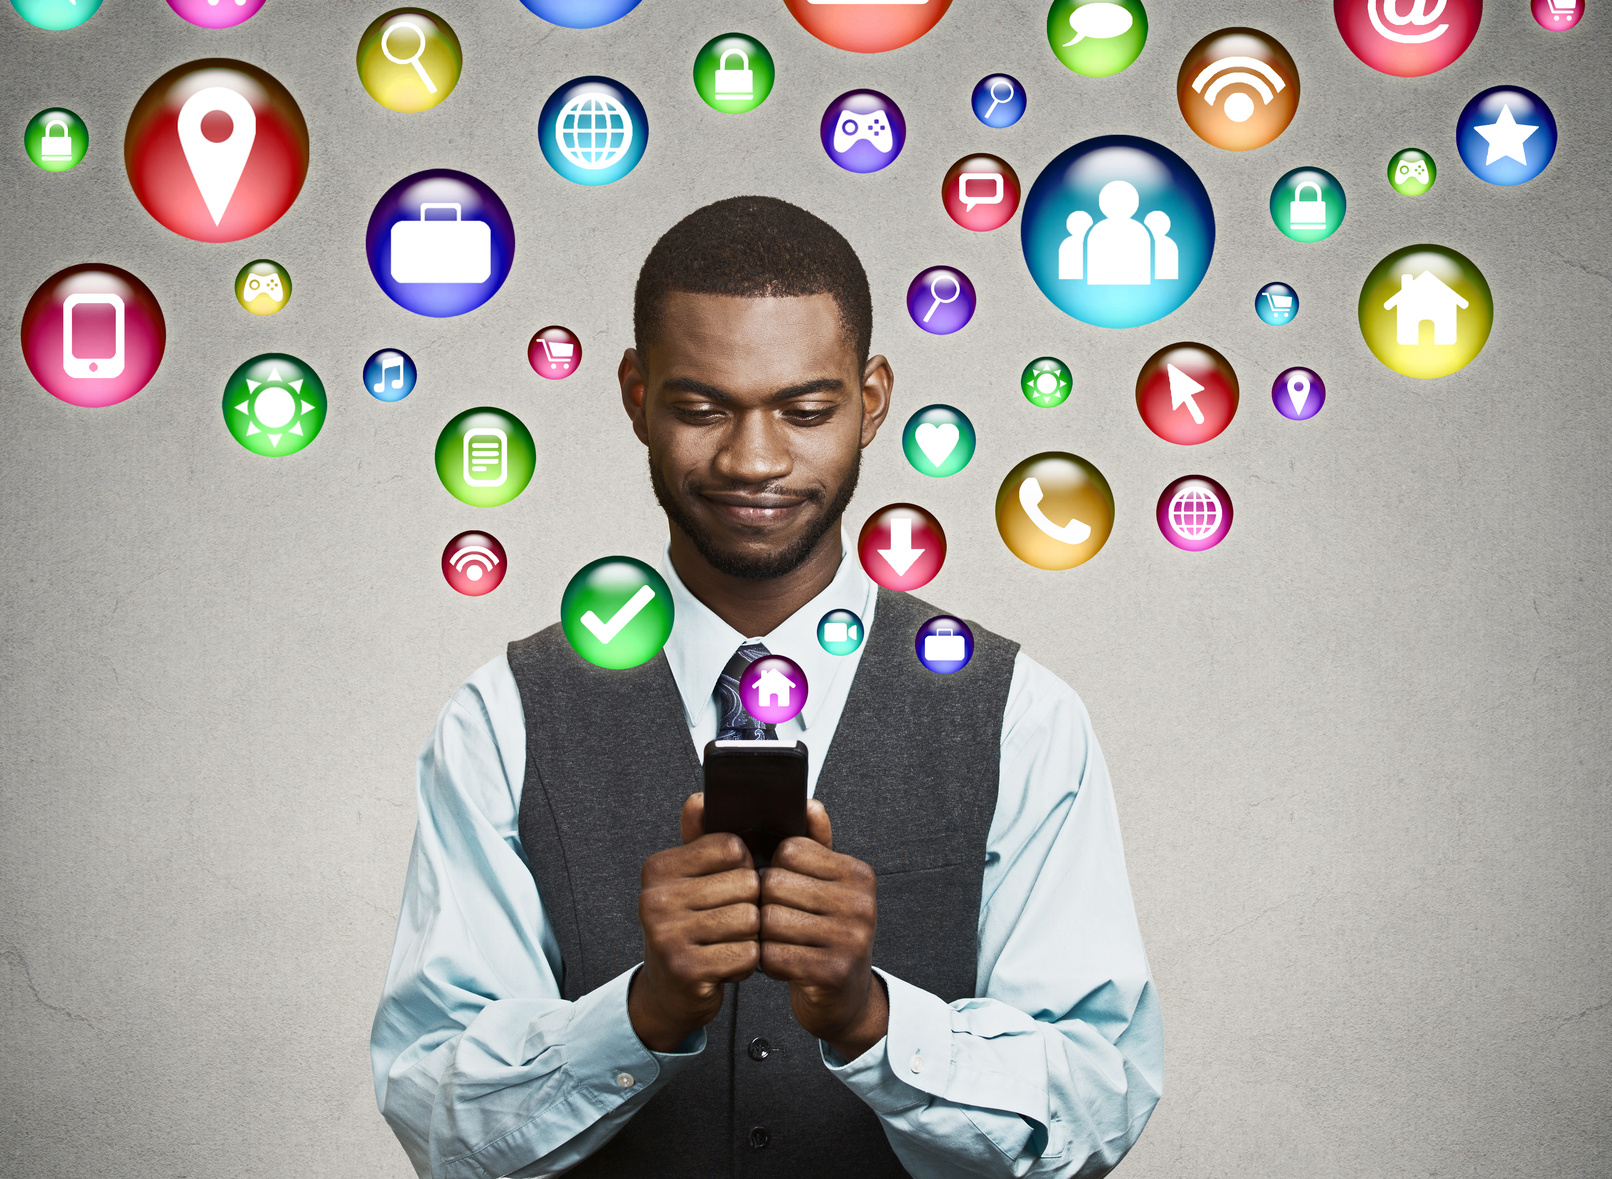 communication technology mobile phone high tech concept. business man using texting on smartphone social media application icons flying out of cellphone isolated grey wall background. 4g data plan